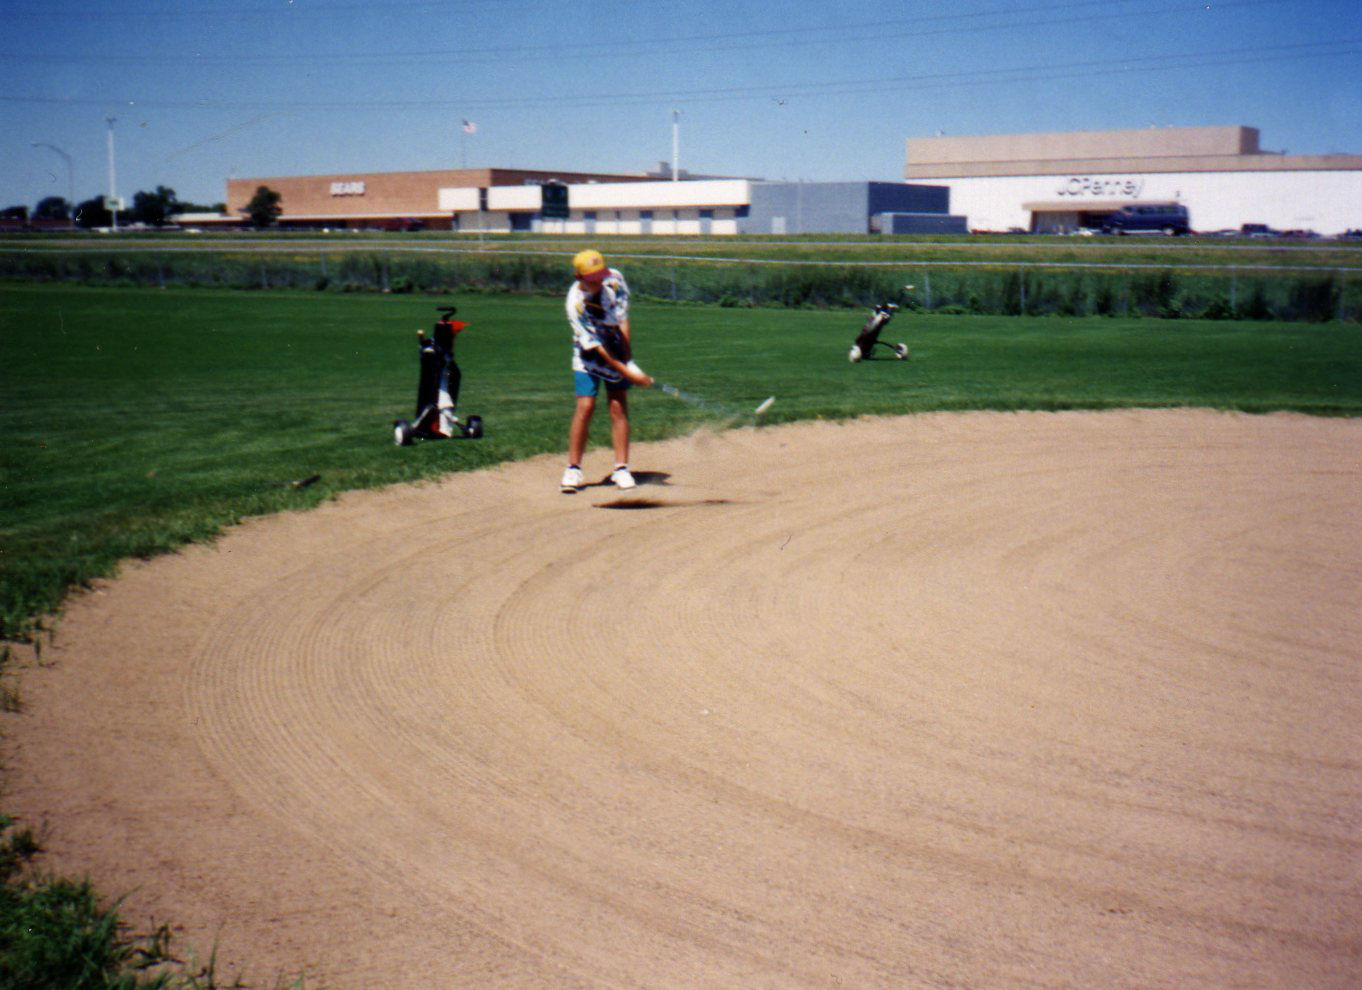 July, 1994 at Centerbrook Golf Course (the golfer is my brother). Brookdale Mall is in the background